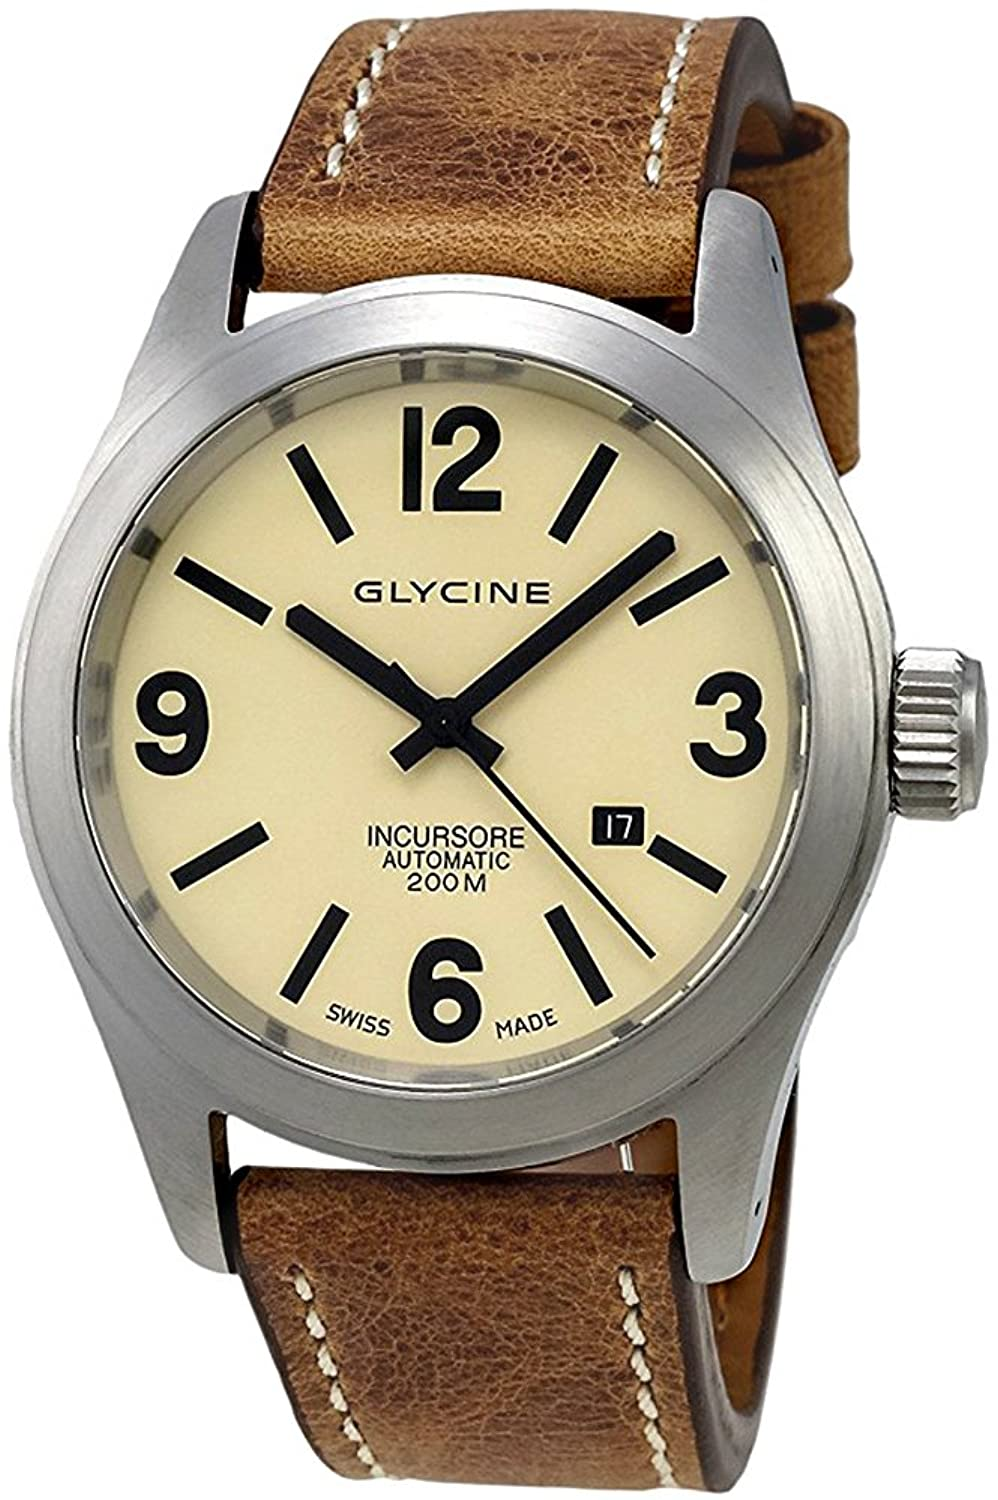 Glycine Incursore Automatic Stainless Steel Mens Strap Swiss Watch Calendar 3874.15 LB7BH